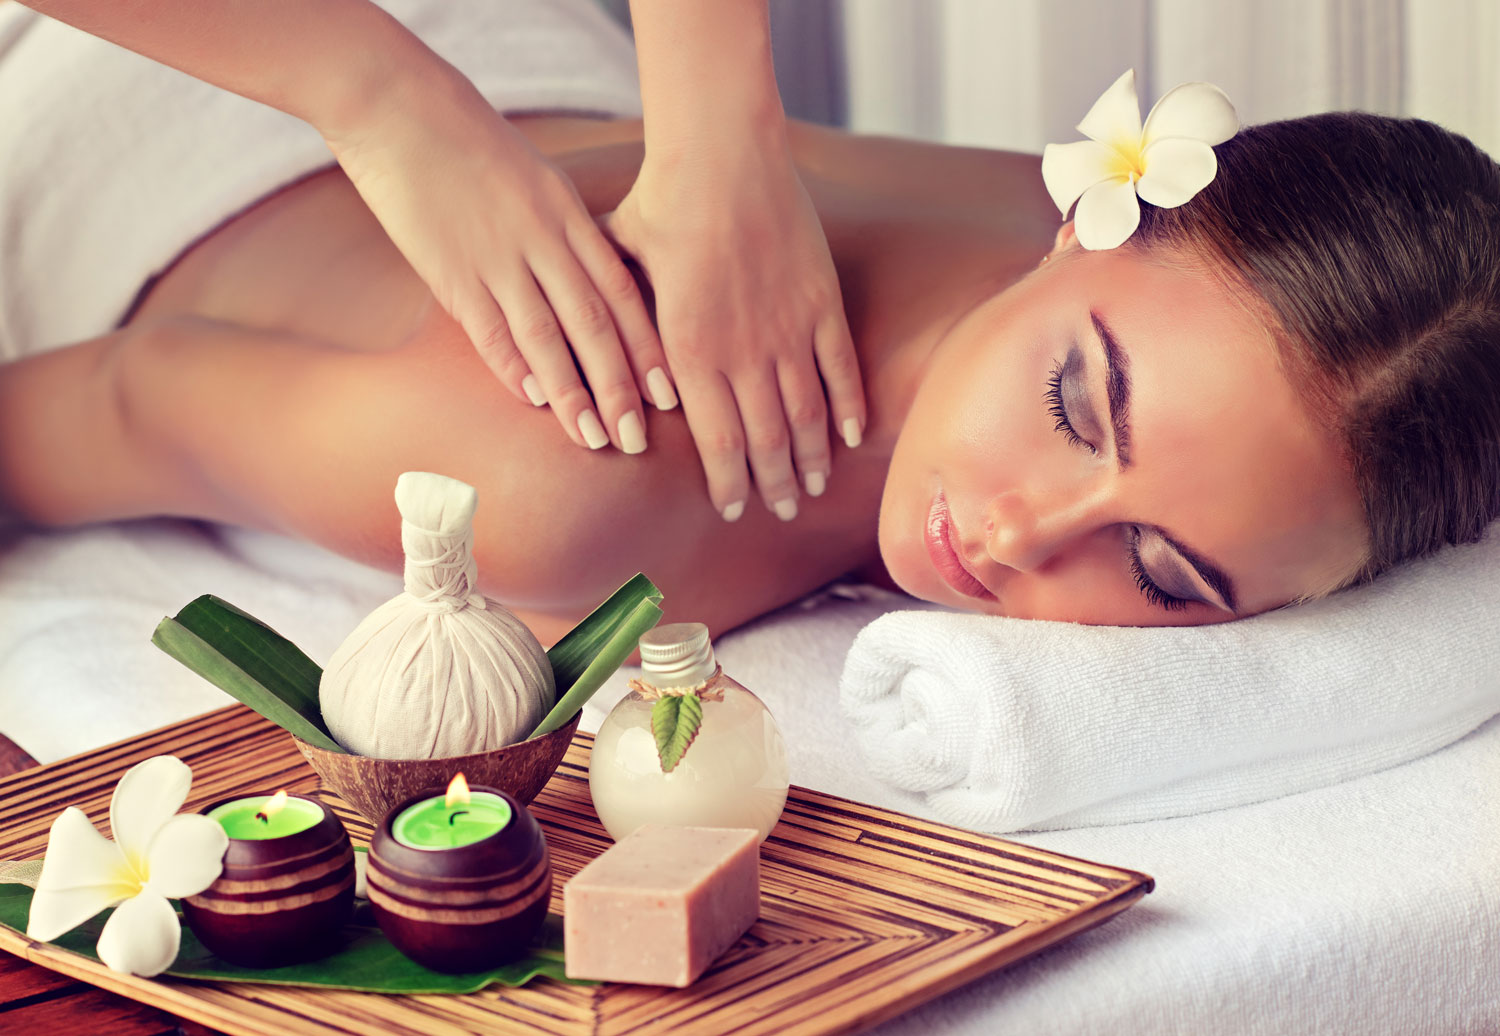 Woman-is-getting-massage-in-the-spa-salon